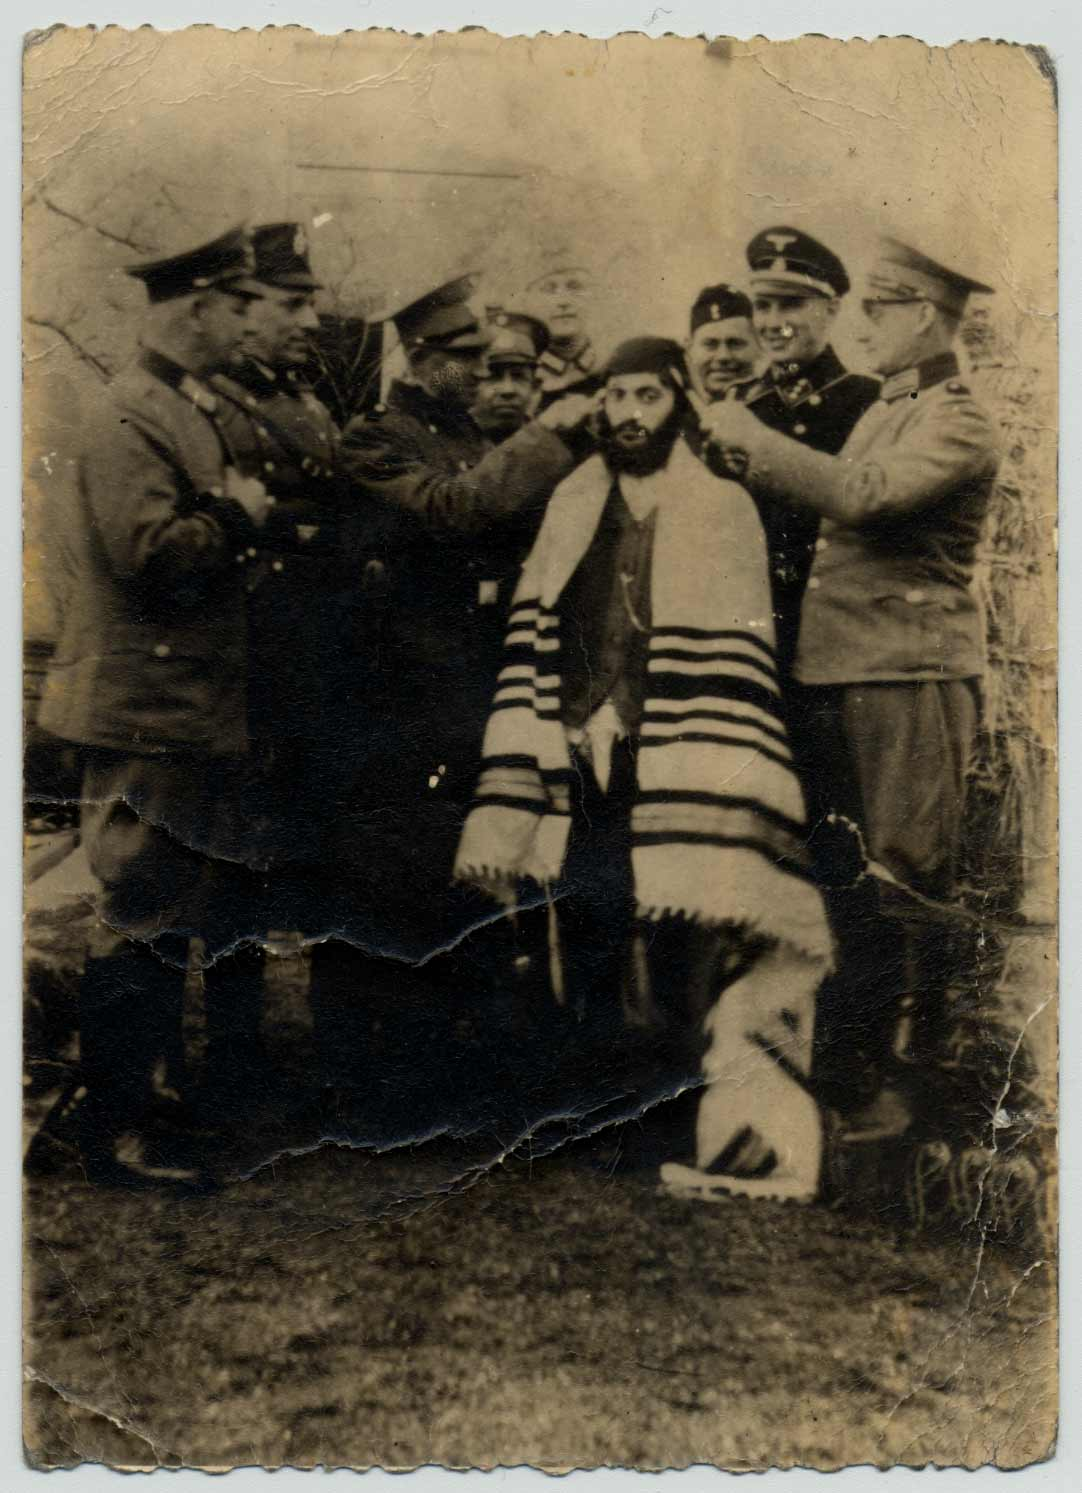 A Jewish man is humiliated by Nazi soldiers who are cutting his beard.